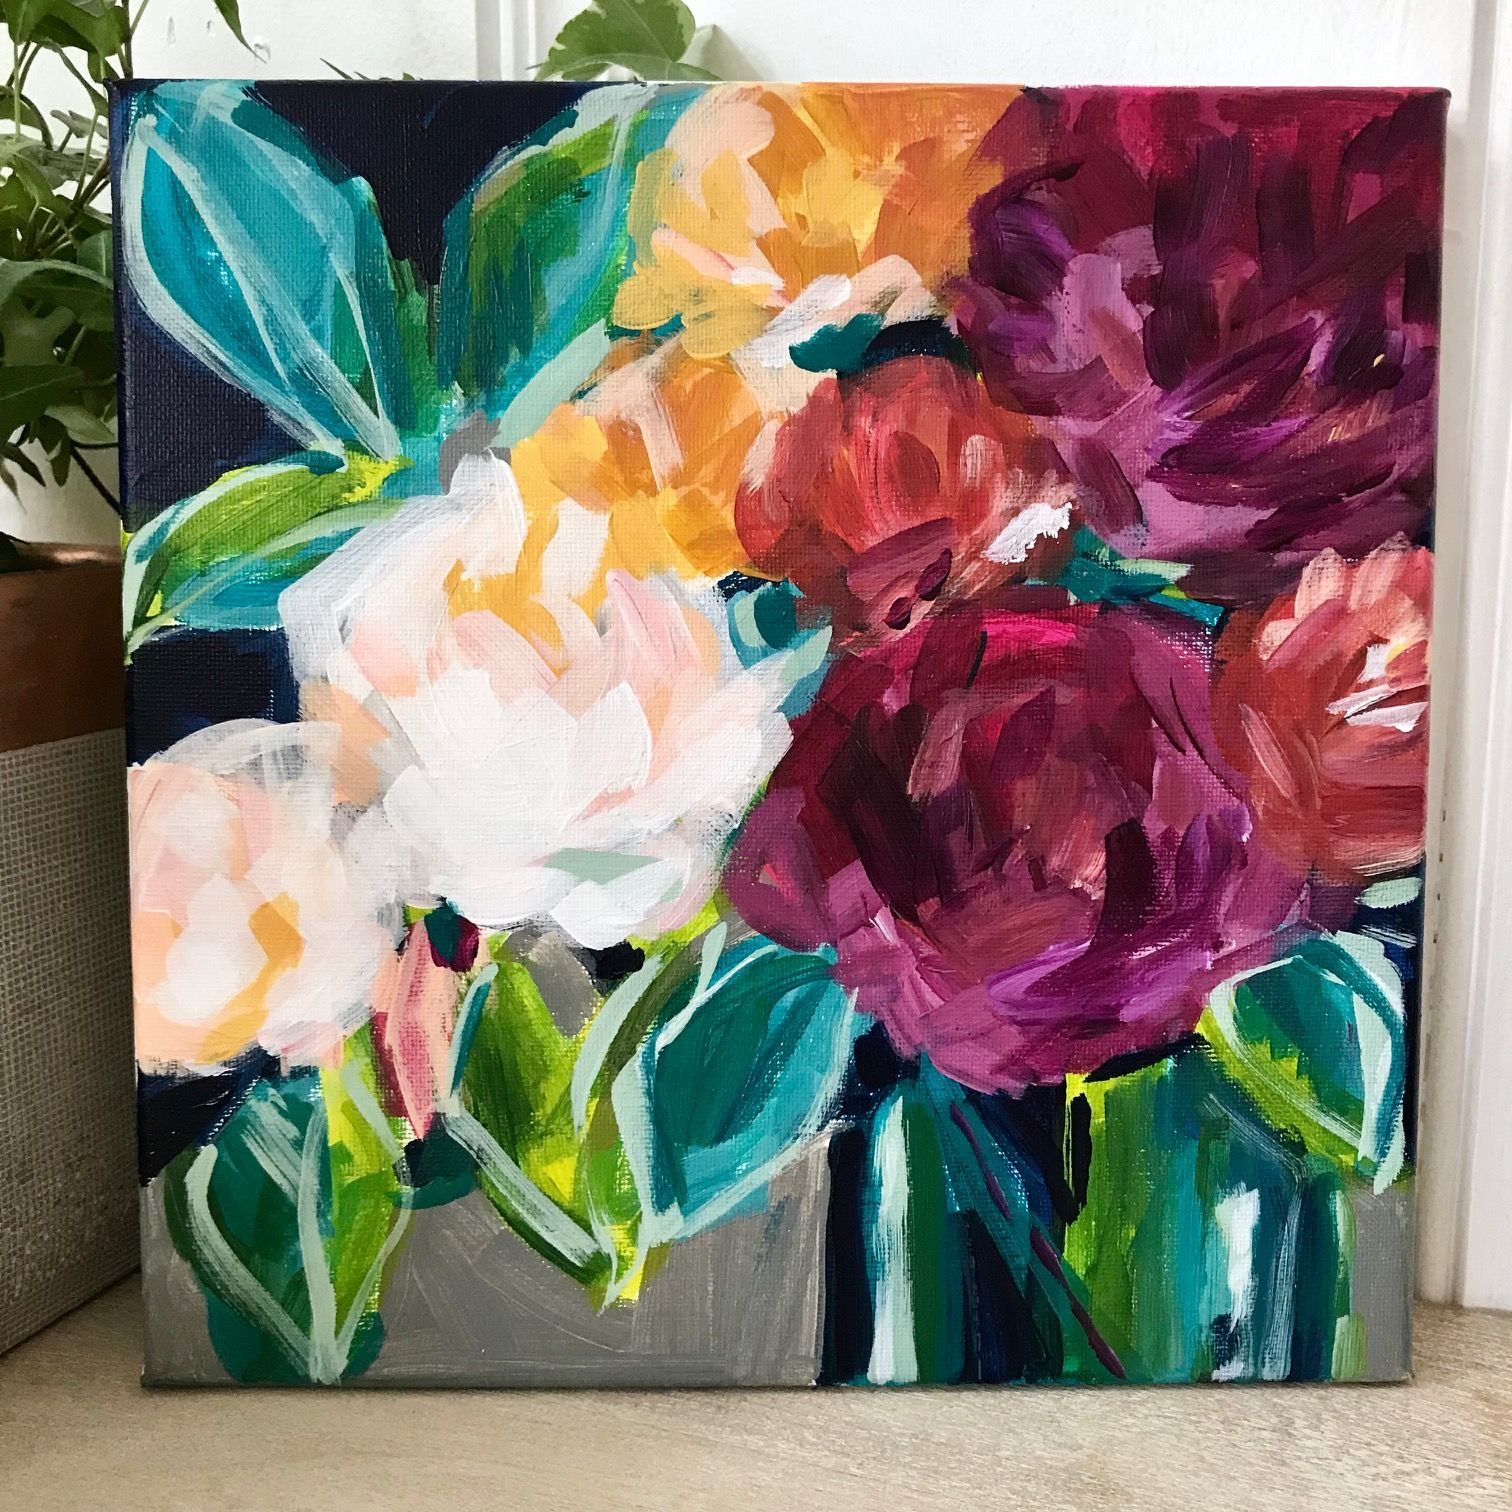 Learn How To Paint Easy Abstract Flowers With Acrylic Paint On